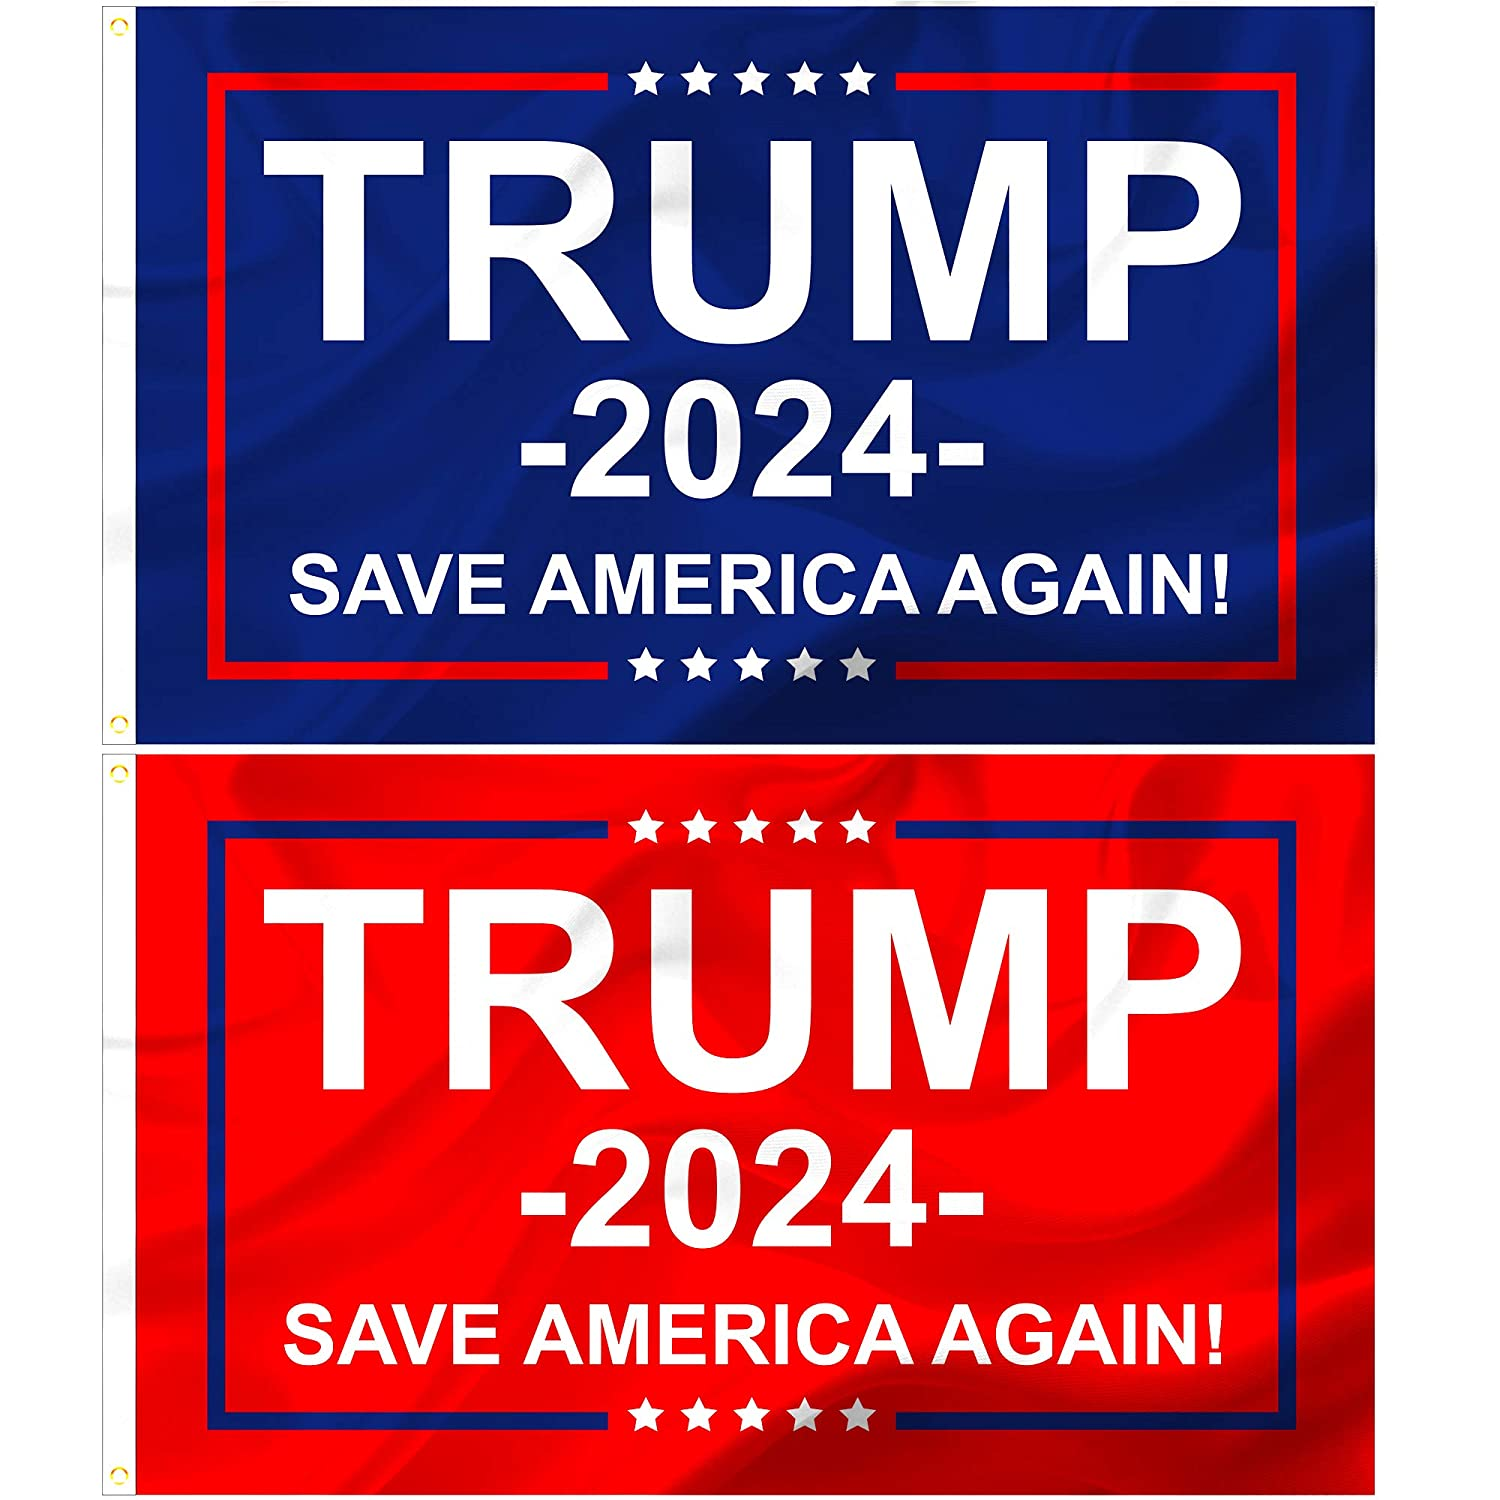 Lousard Donald Trump 2024 Flags 3x5, 2 Pc. Set, Save America Again and Re-Elect Former U.S. President, Weather Resistant for Outdoor, Garden, or Front Yard Display, MAGA